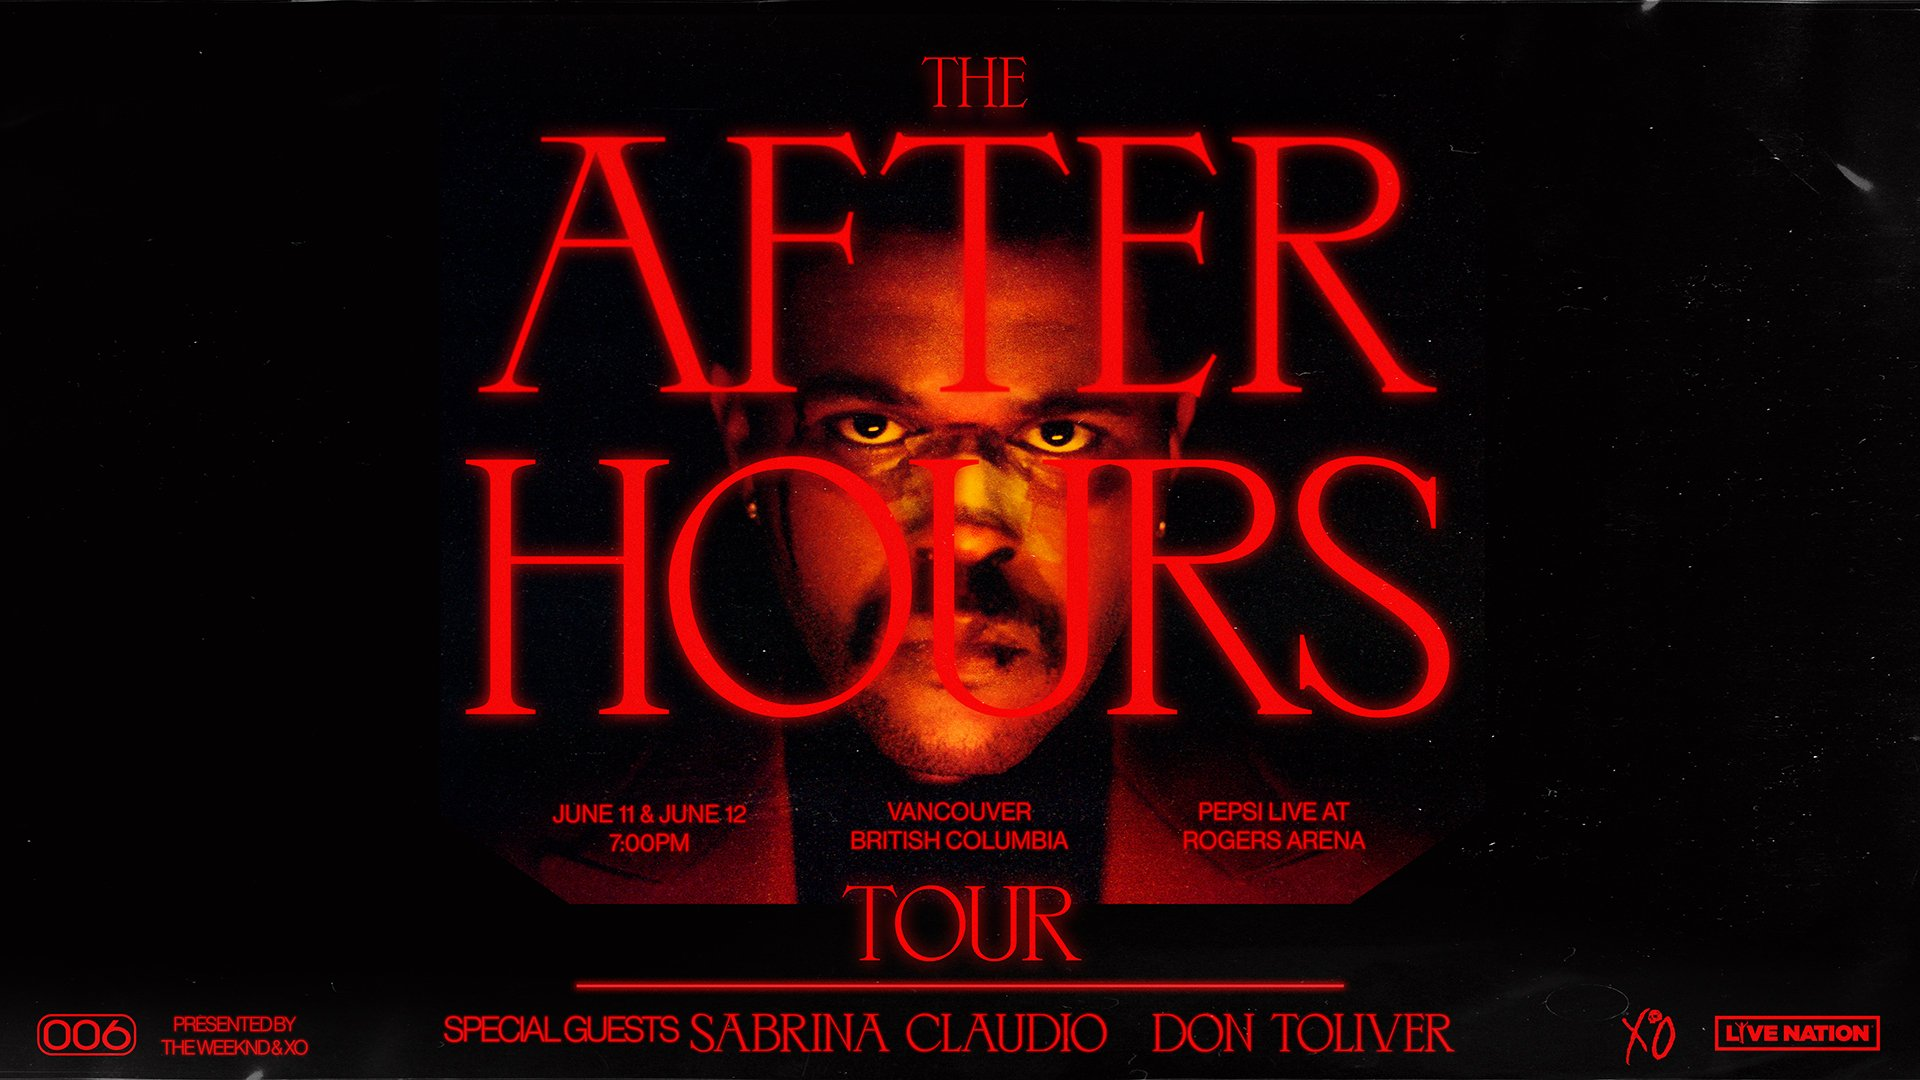 Second Show Added The Weeknd The After Hours Tour Rogers Arena